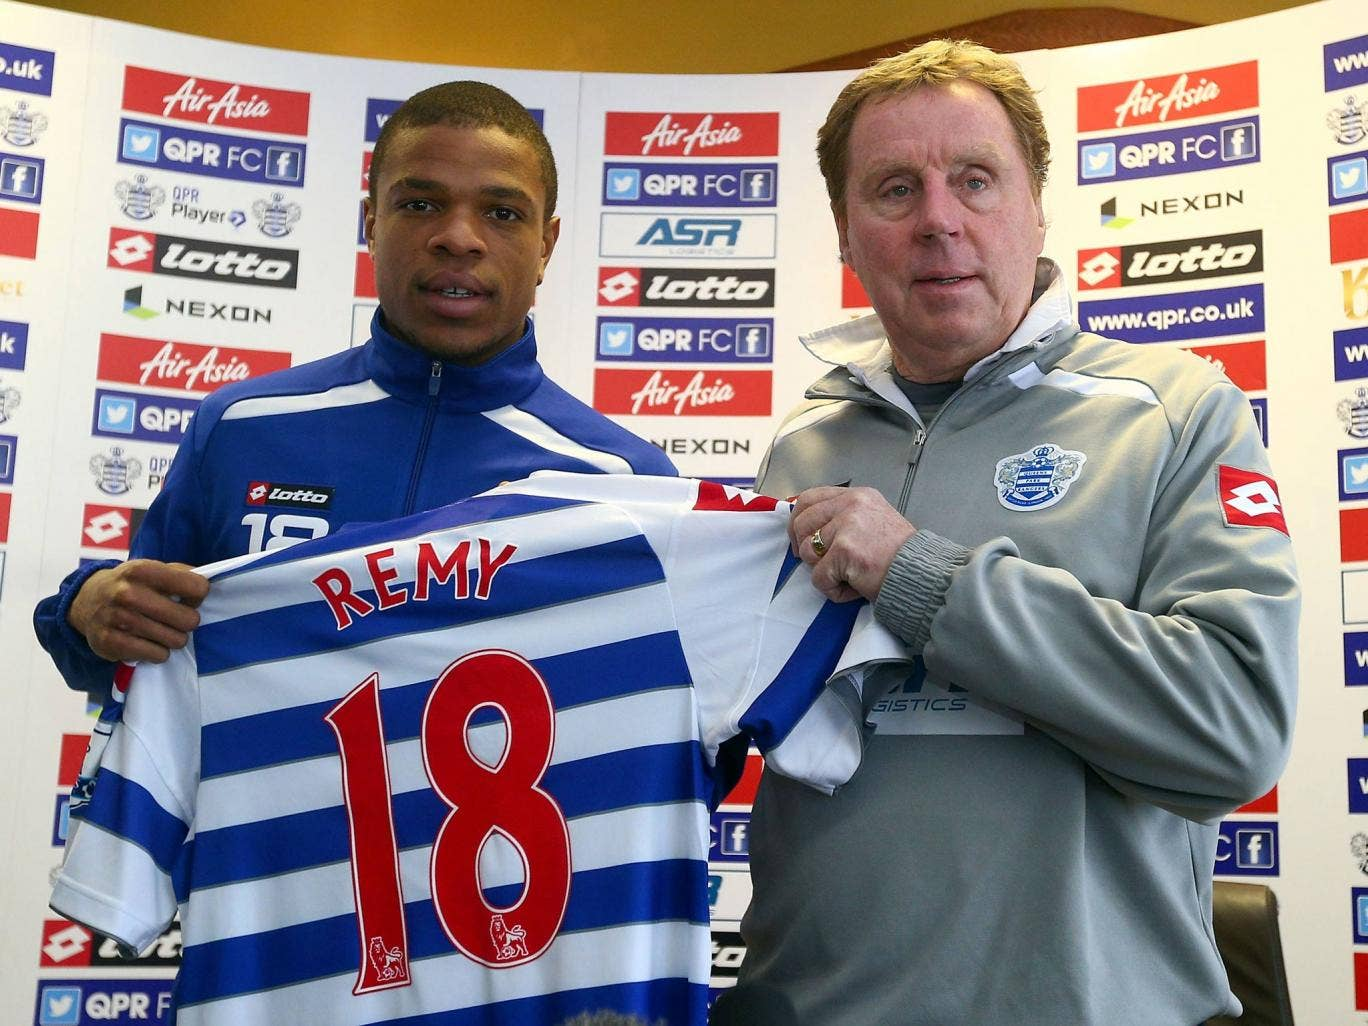 """Harry Redknapp: """"When I told the board I needed an 18 Remy, I was referring to Cognac."""" (18/01/13) <br/><br/> <a href=""""http://www.independent.co.uk/captions"""" target=""""new"""">To enter the current caption competition, click here.</a>"""